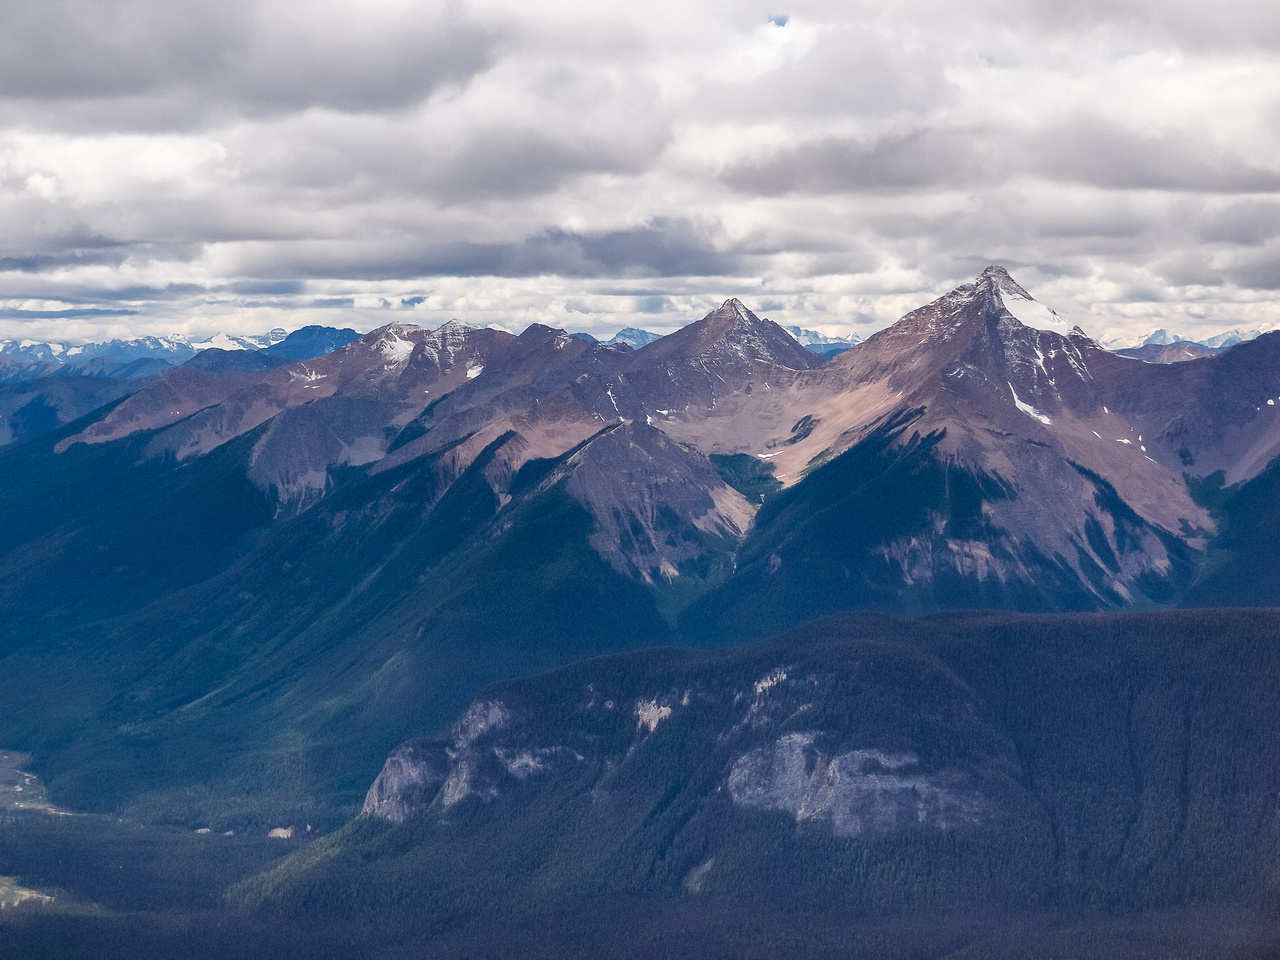 Peaks in the Van Horne Range, west of the TCH and the Ottertail Range (Vaux, Chancellor, Goodsir Towers).